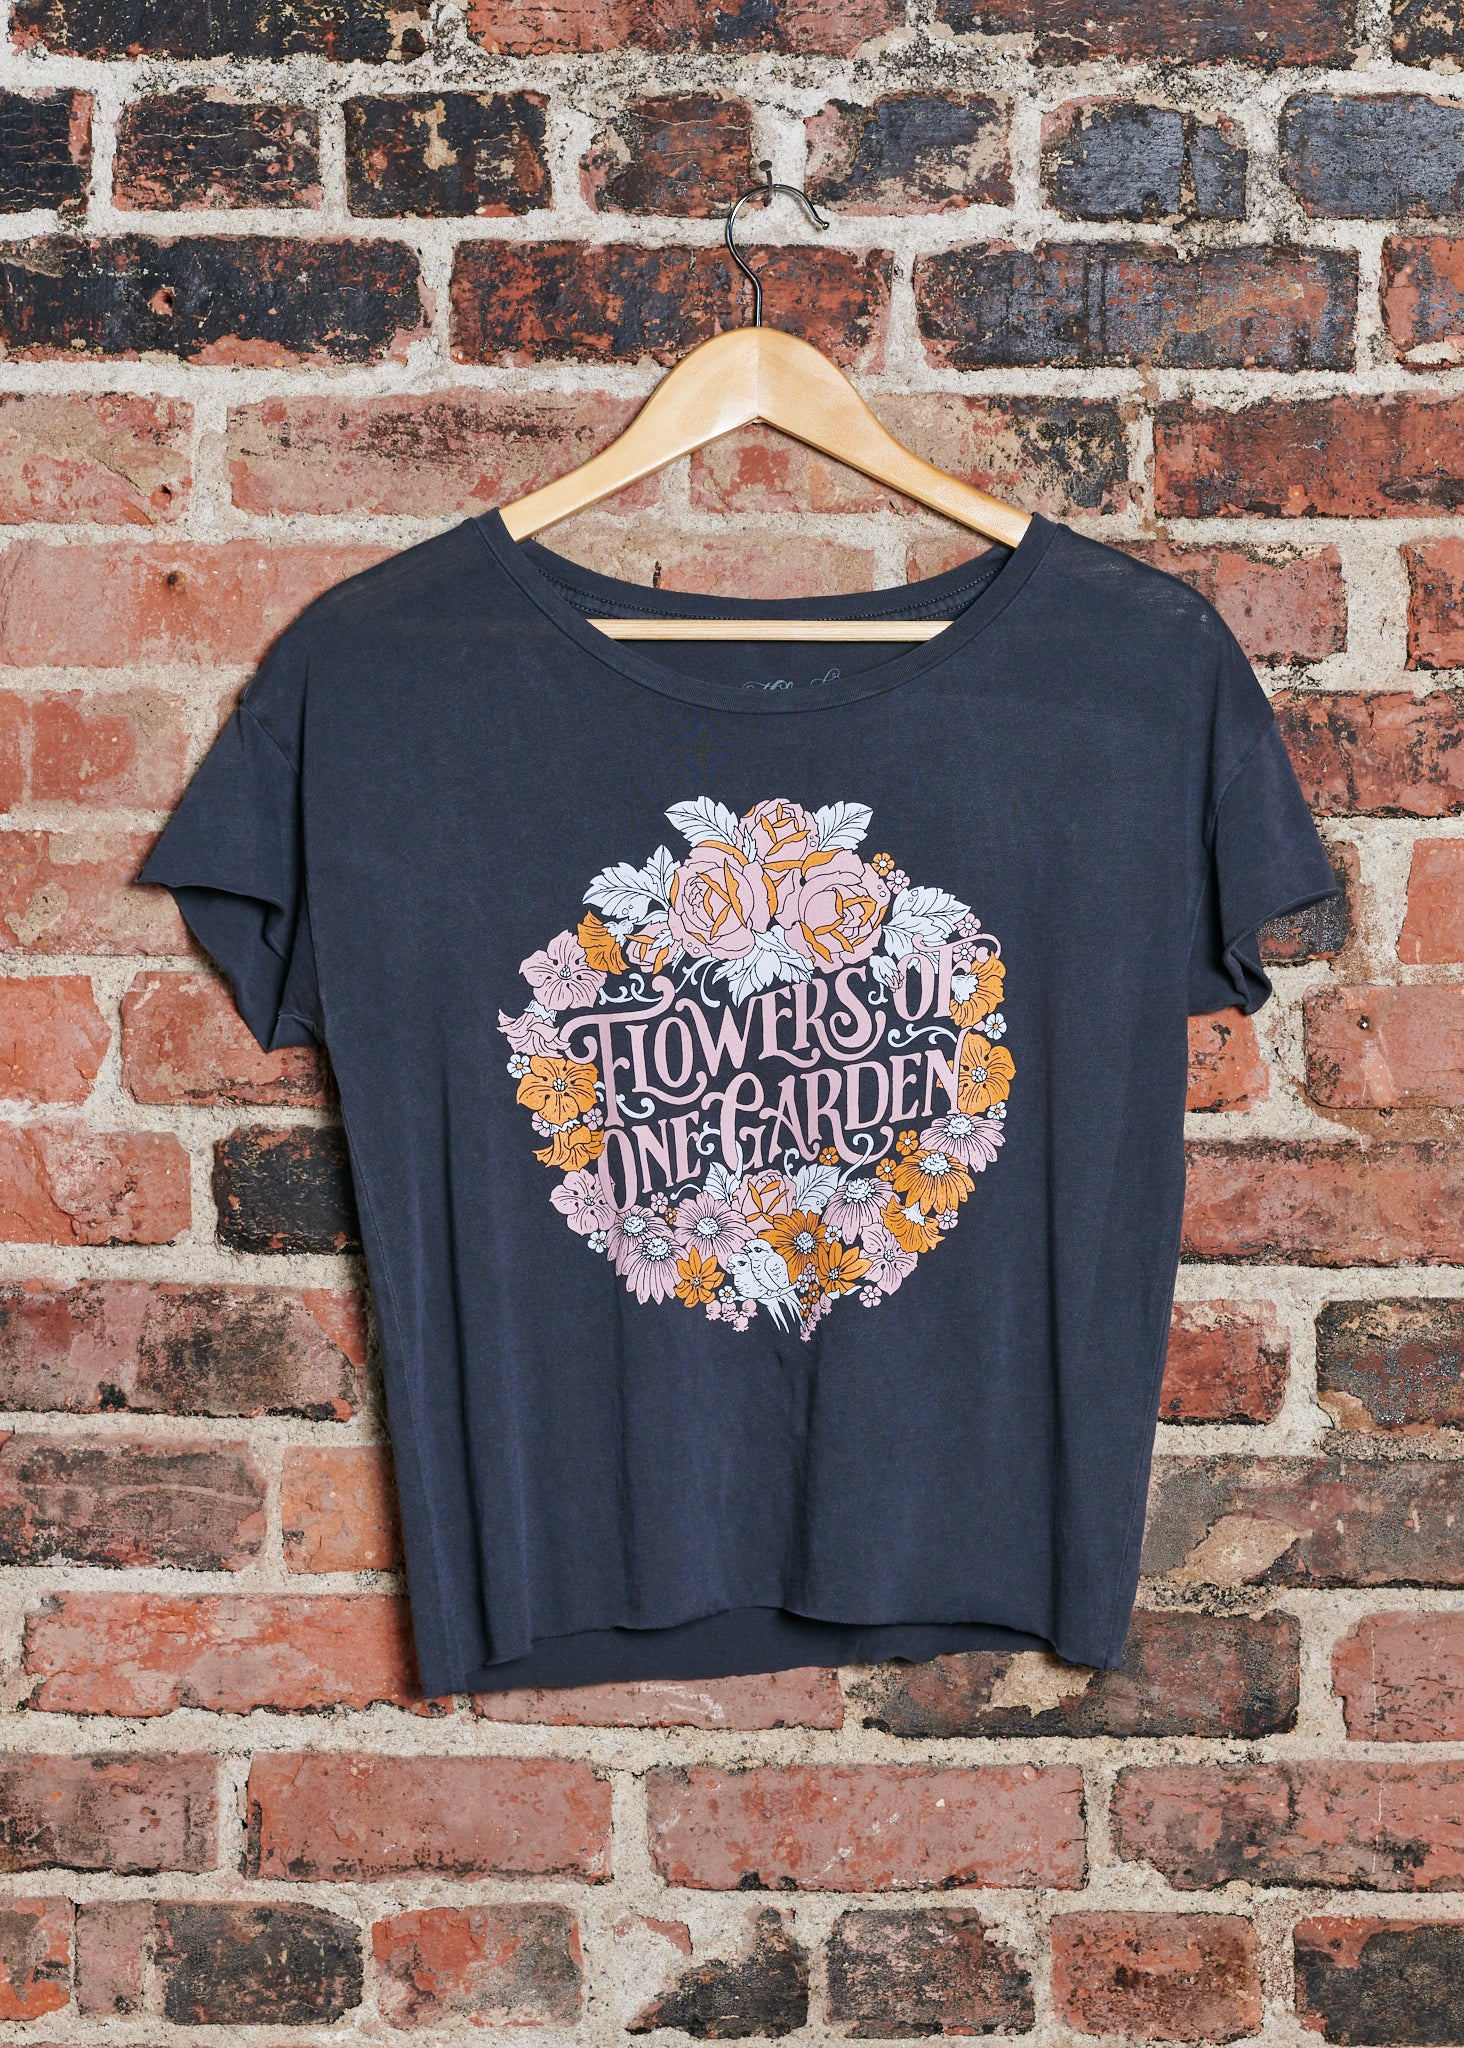 Flowers of One Garden Cut-Off Tee - Vintage Black